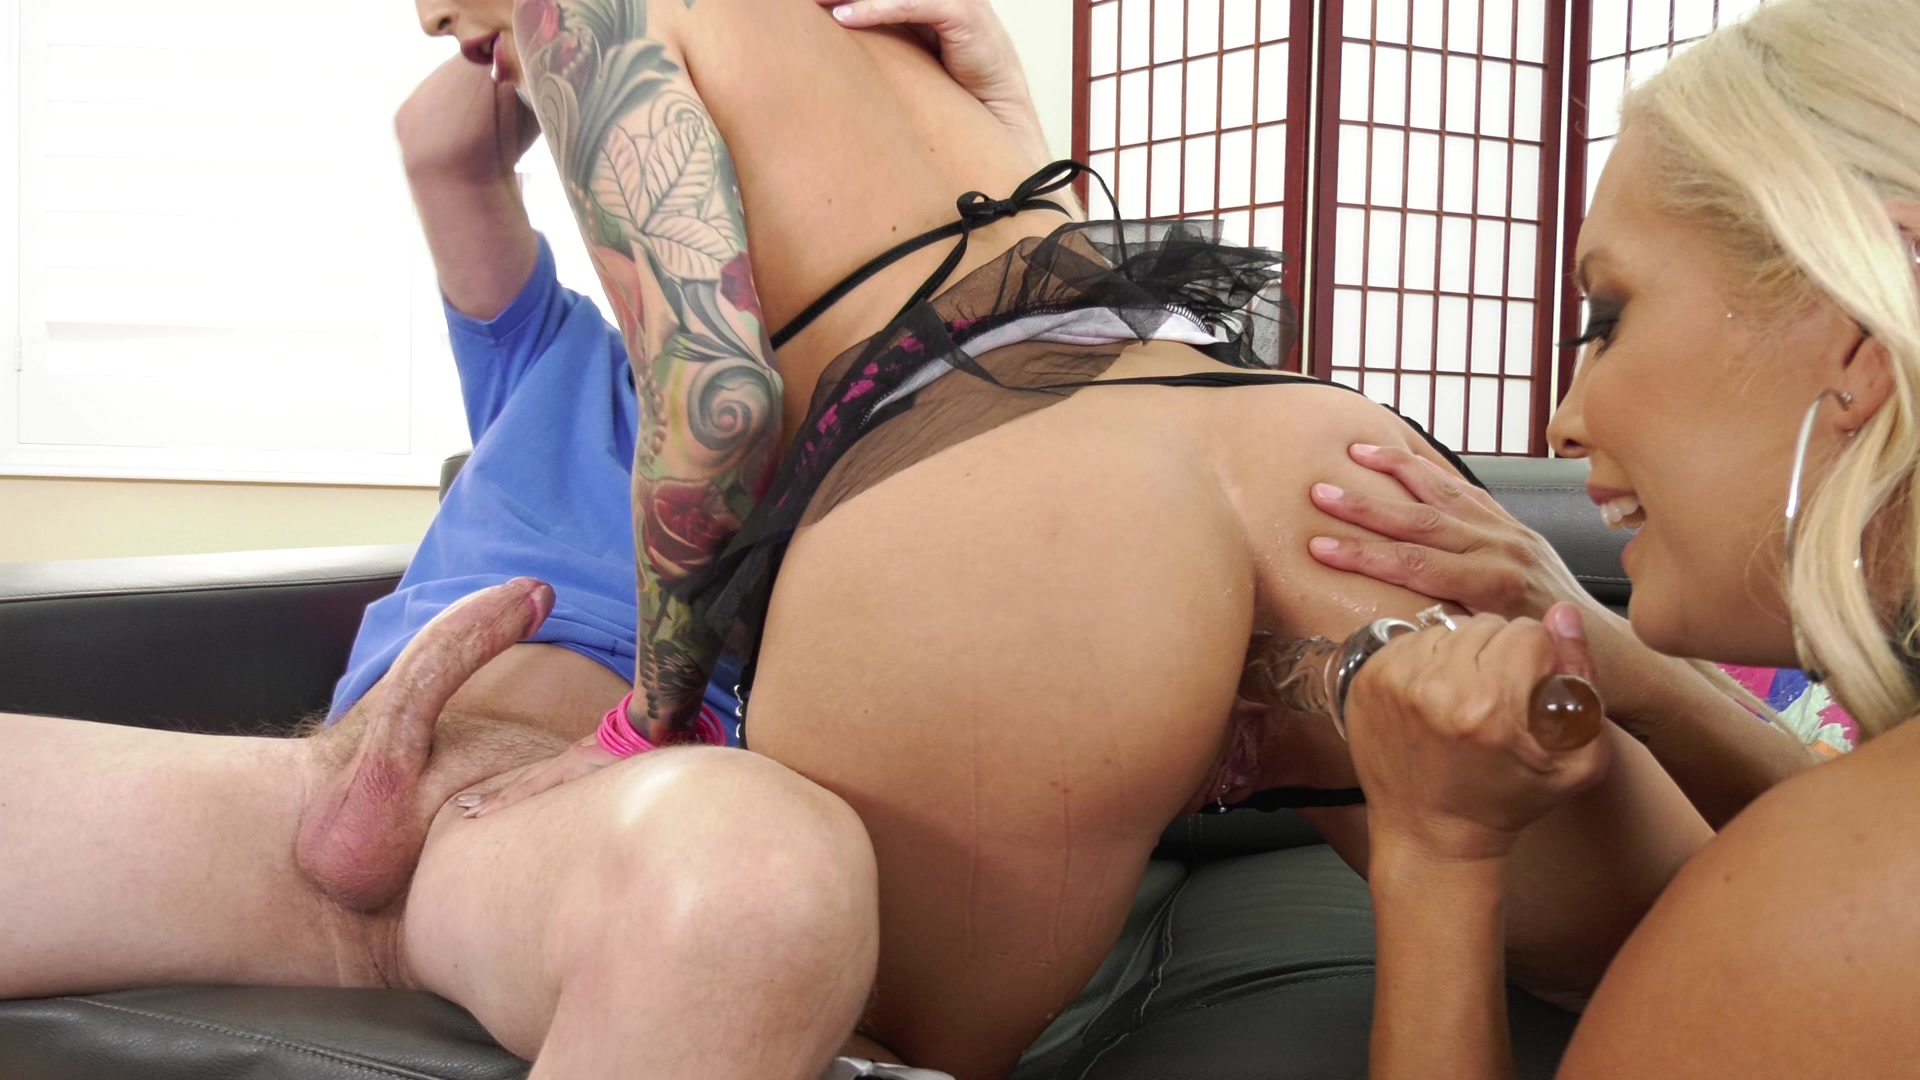 Scene with Francesca Le, Mark Wood and Katrina Jade - image 10 out of 20